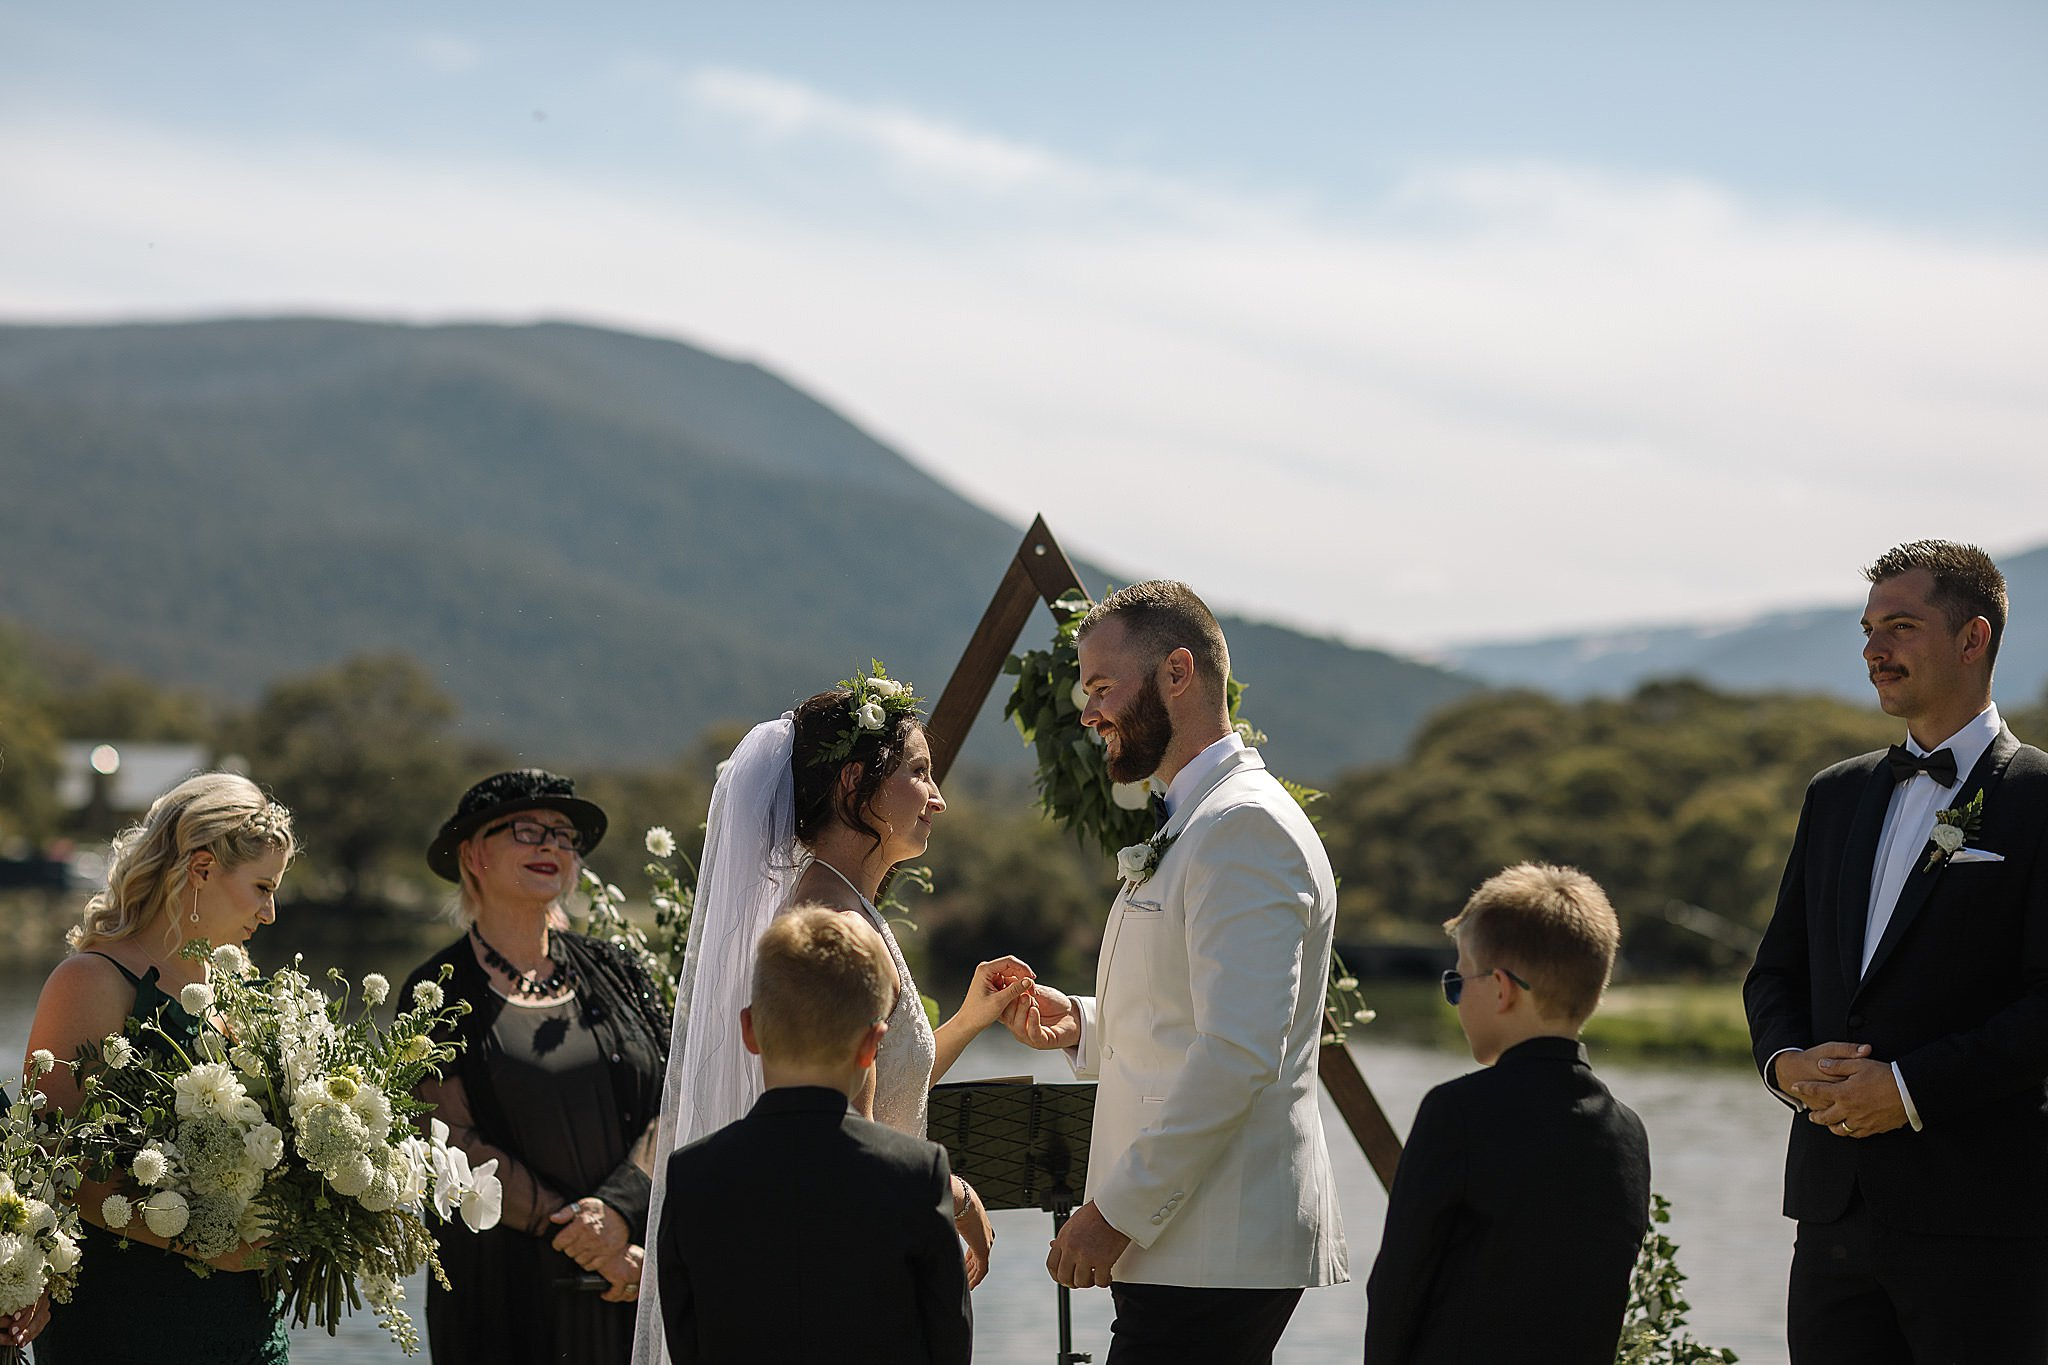 Lake Crackenback wedding,Snowy Mountains Wedding Photographer,Destination photographer,Keepsakephoto by the Keeffes,ACT wedding photographer,ACT weddings,Bowral Wedding Photographer,Canberra Wedding Photographer,canberra weddings,destination wedding photography,Thredbo Wedding Photography,Thredbo,Inspiration,Wedding,